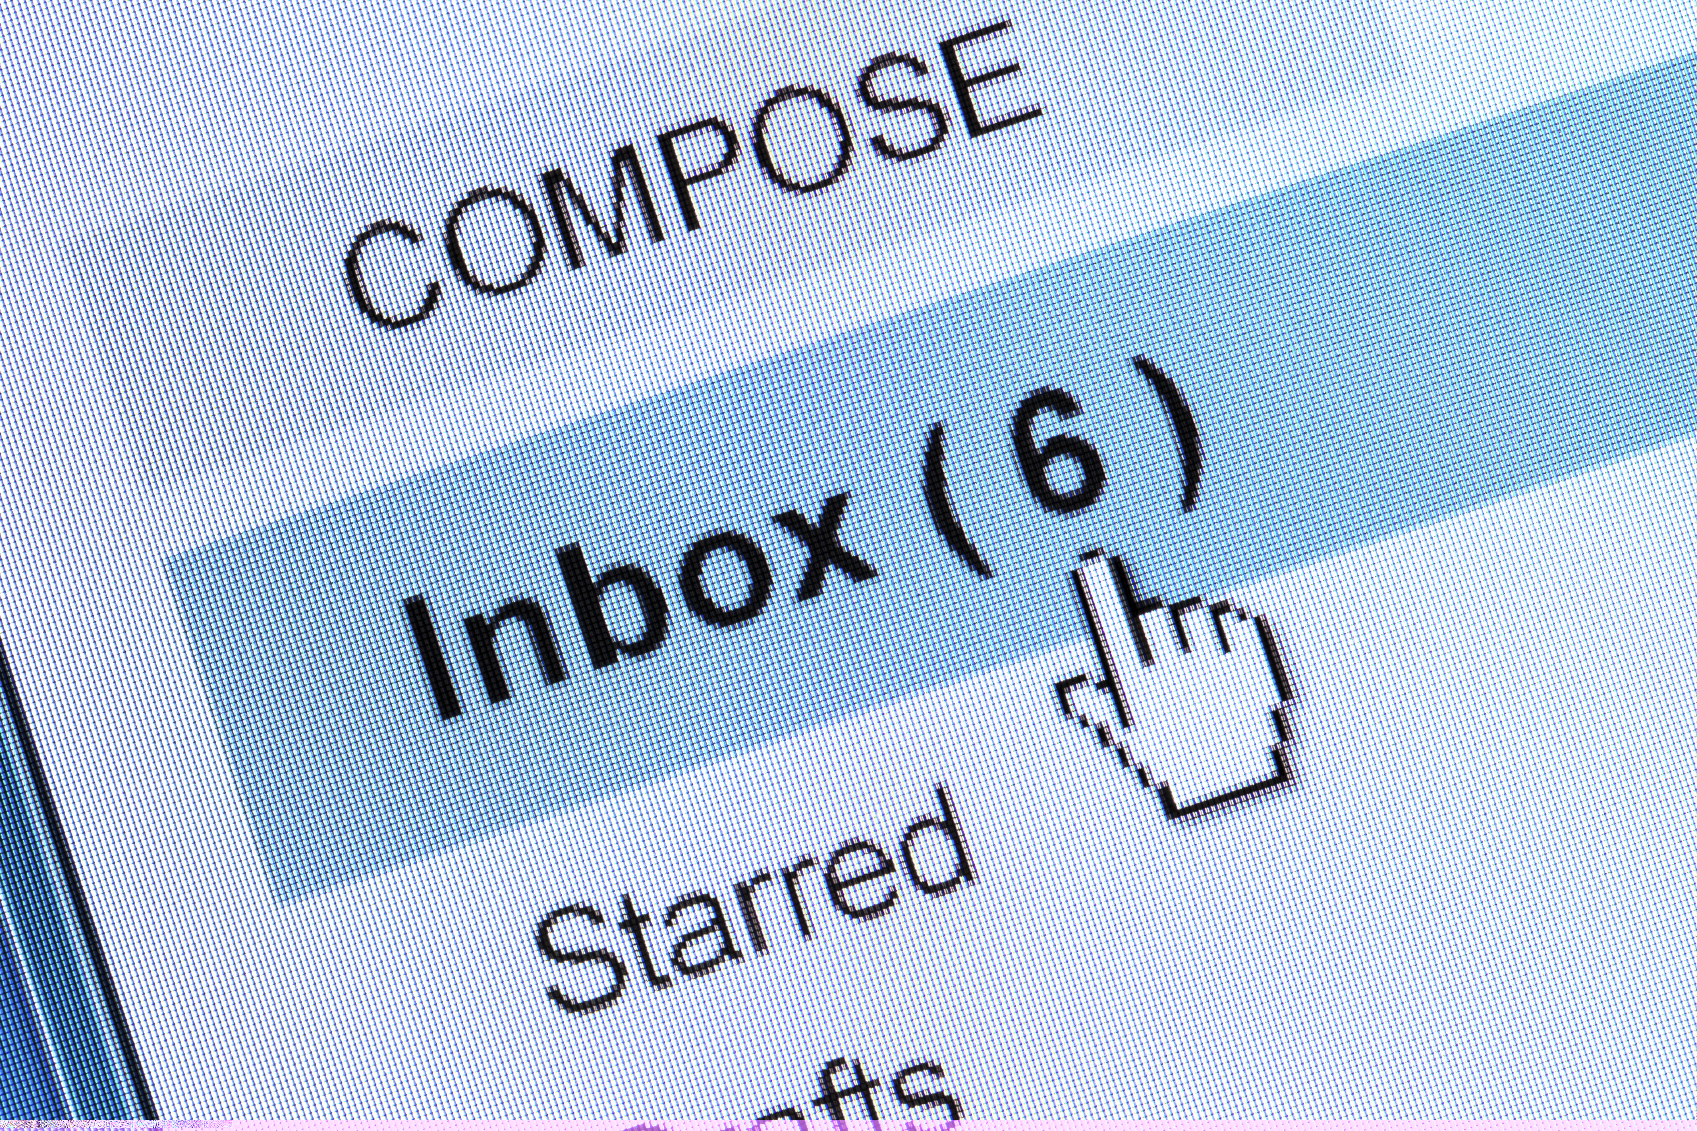 Email inbox (Getty Images)